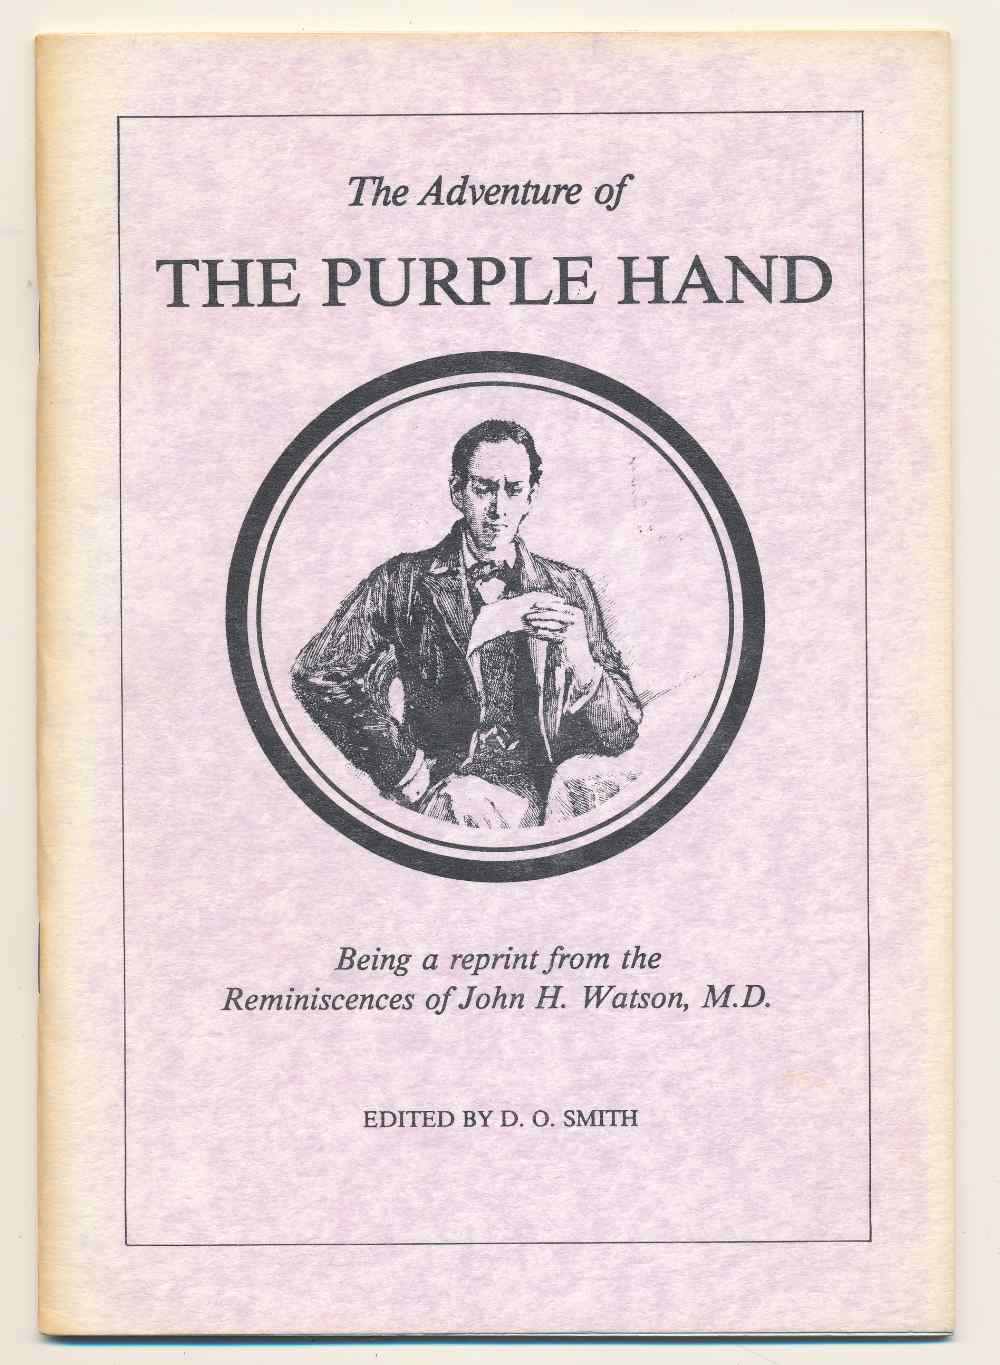 The adventure of the purple hand : being a reprint from the reminiscences of John H. Watson, M.D.